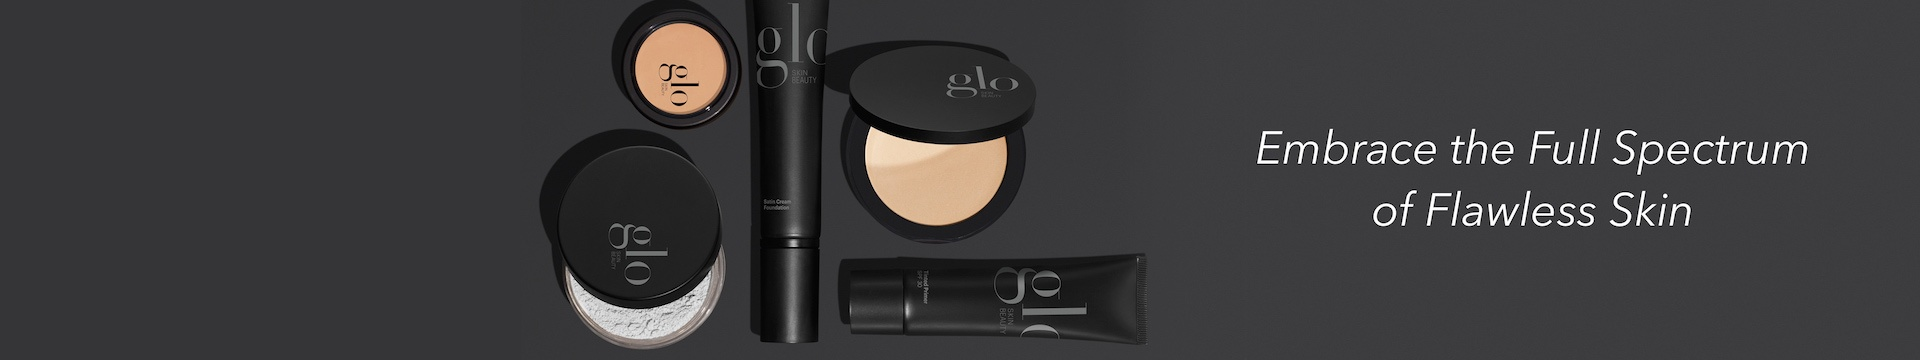 GLO Skin Beaty Professional Skincare & Mineral Makeup Plano Frisco Dallas Allen McKinney Addison TX DFW AALAM THe Salon LUXBAR by AALAM 10